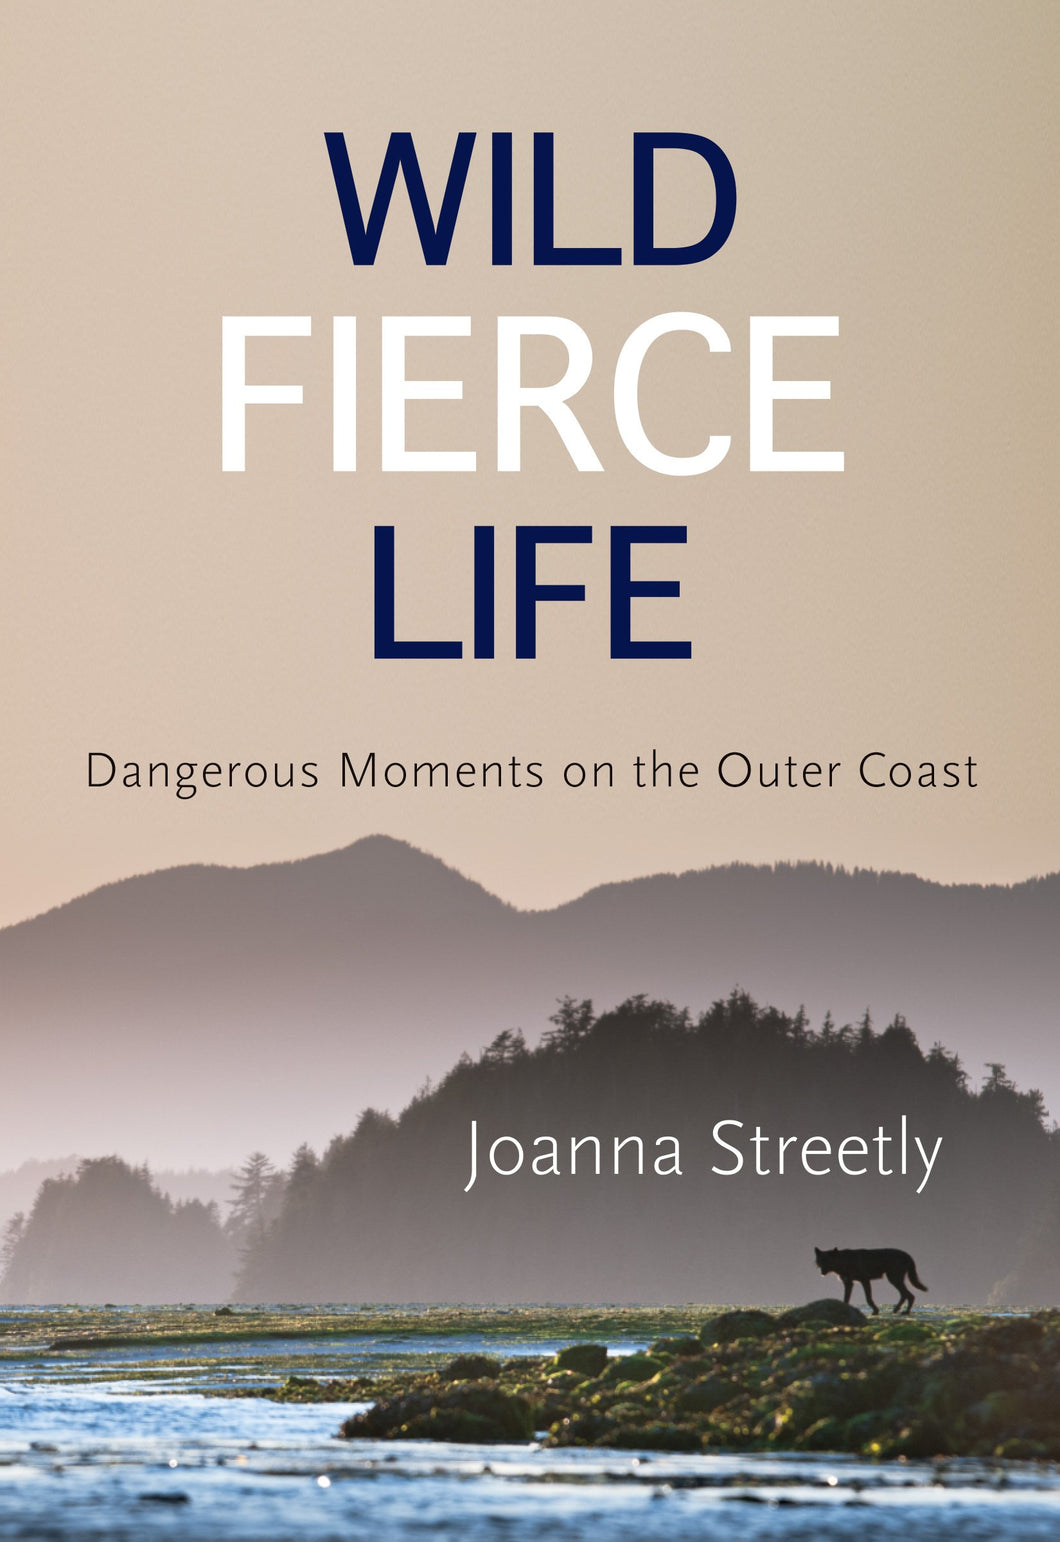 New Book: Wild Fierce Life